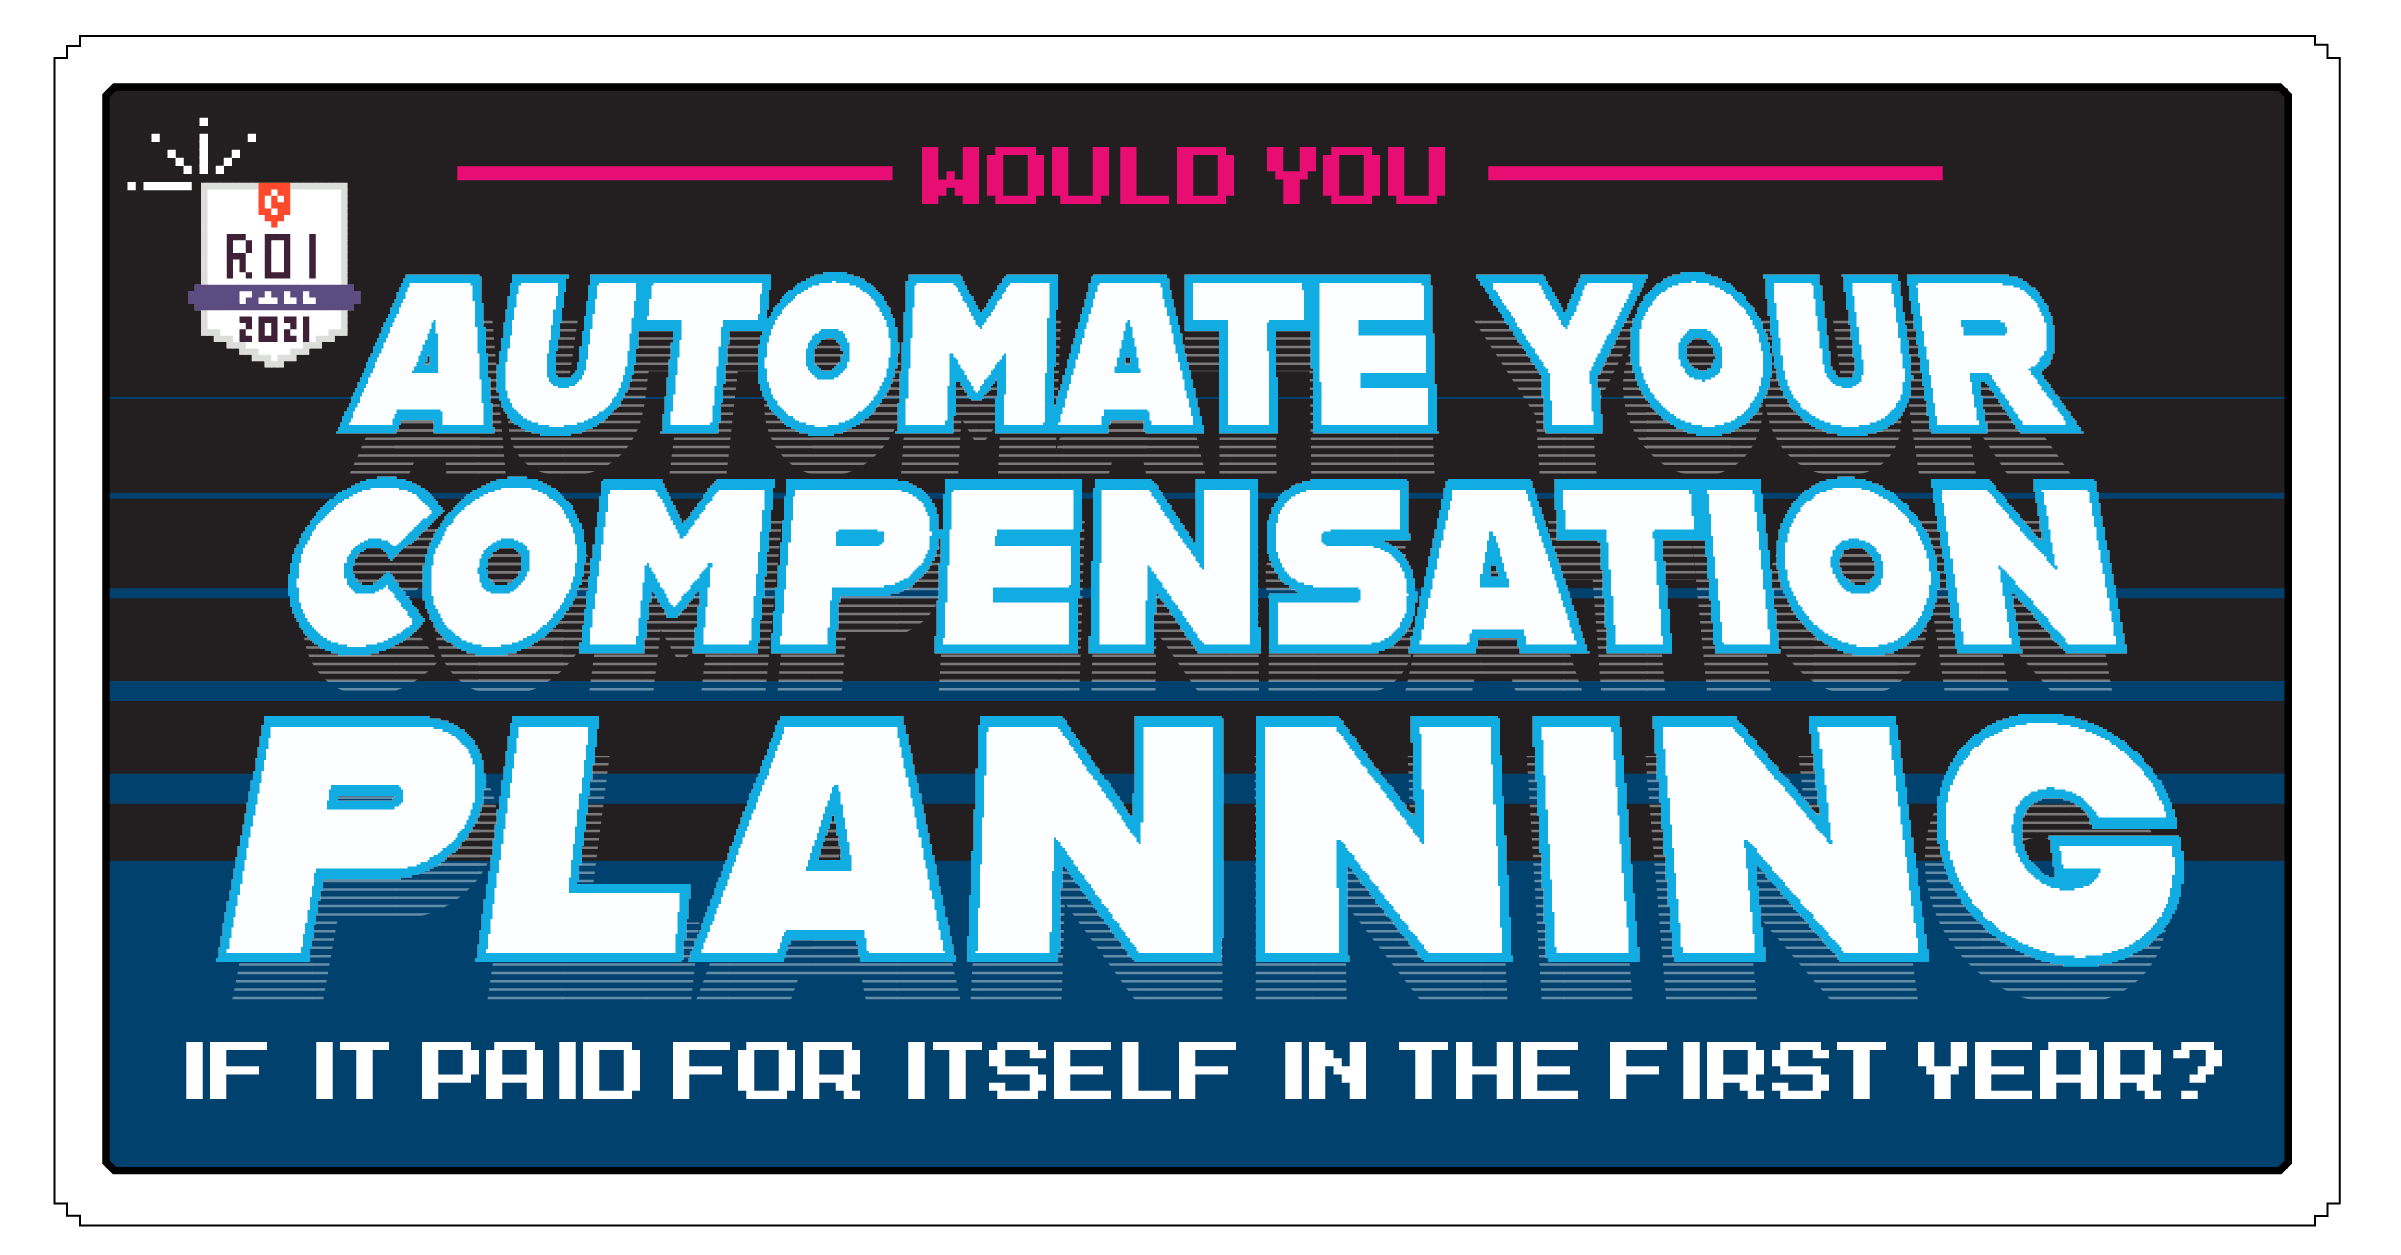 Would you automate your compensation planning if it paid for itself in the first year?